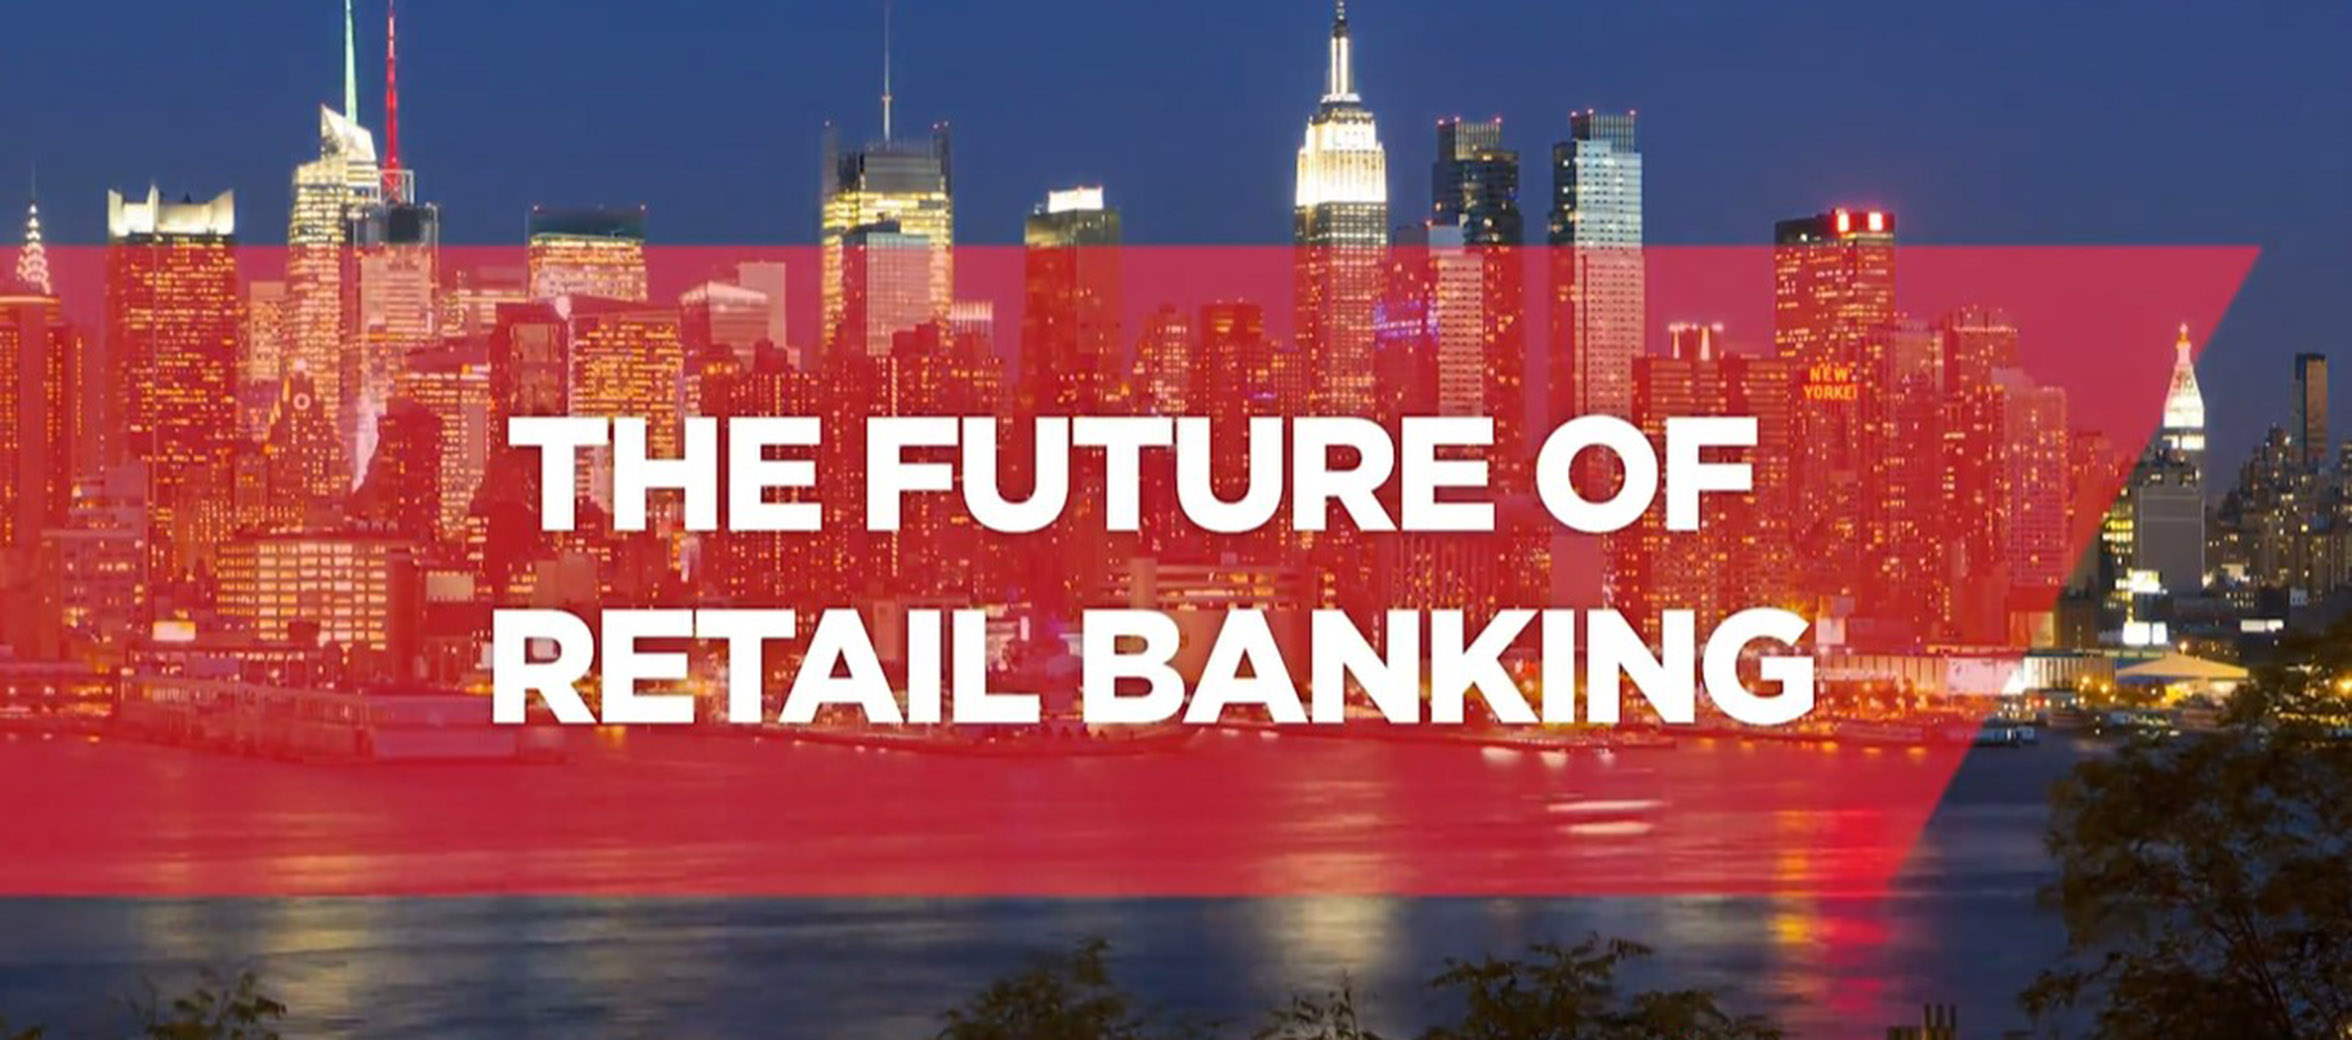 The Future of Retail Banking Video